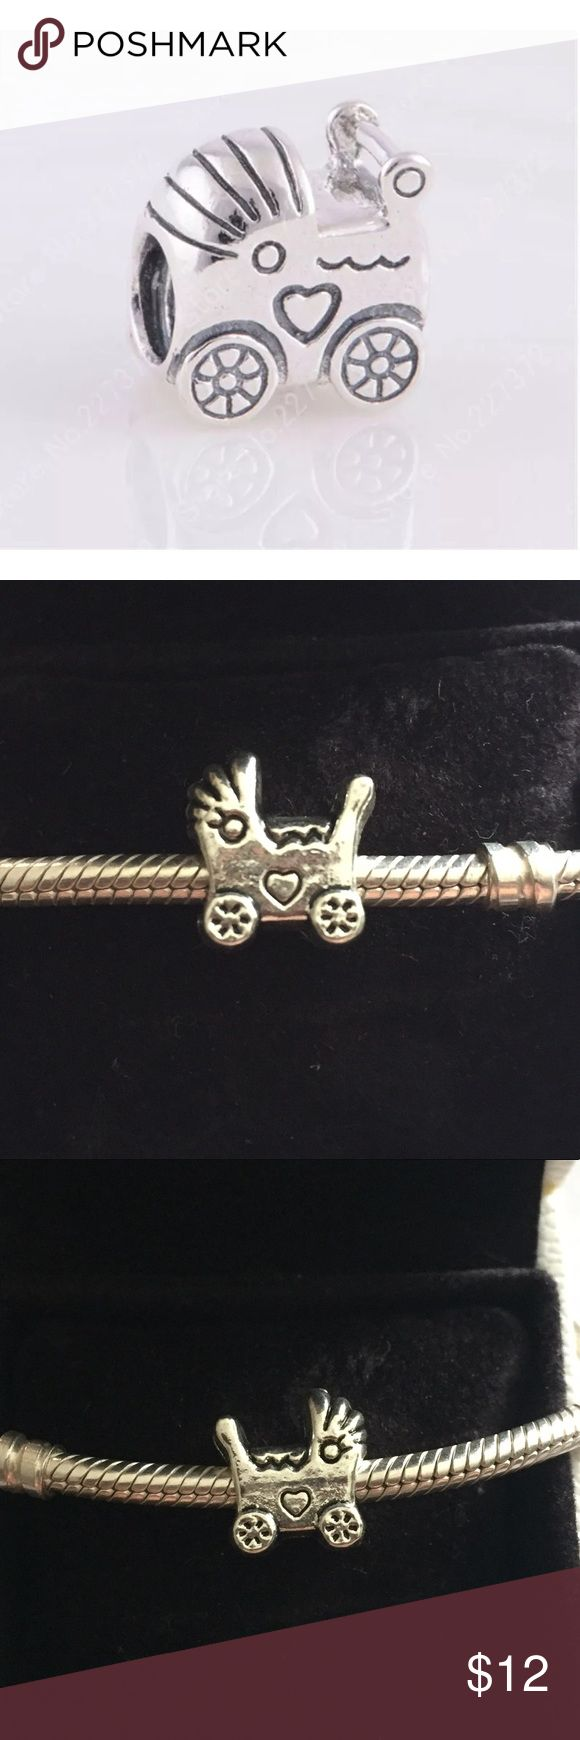 New Baby Stroller Carriage Charm Bead in Tibetan Brand new! Baby Carriage Stroller charm. Charm itself is not Pandora but custom made to fit Pandora specifically. High quality made still with Tibetan Silver!! 😀😀 Built To Last!! Please see other charms available for sale to bundle and save big Pandora Jewelry Bracelets